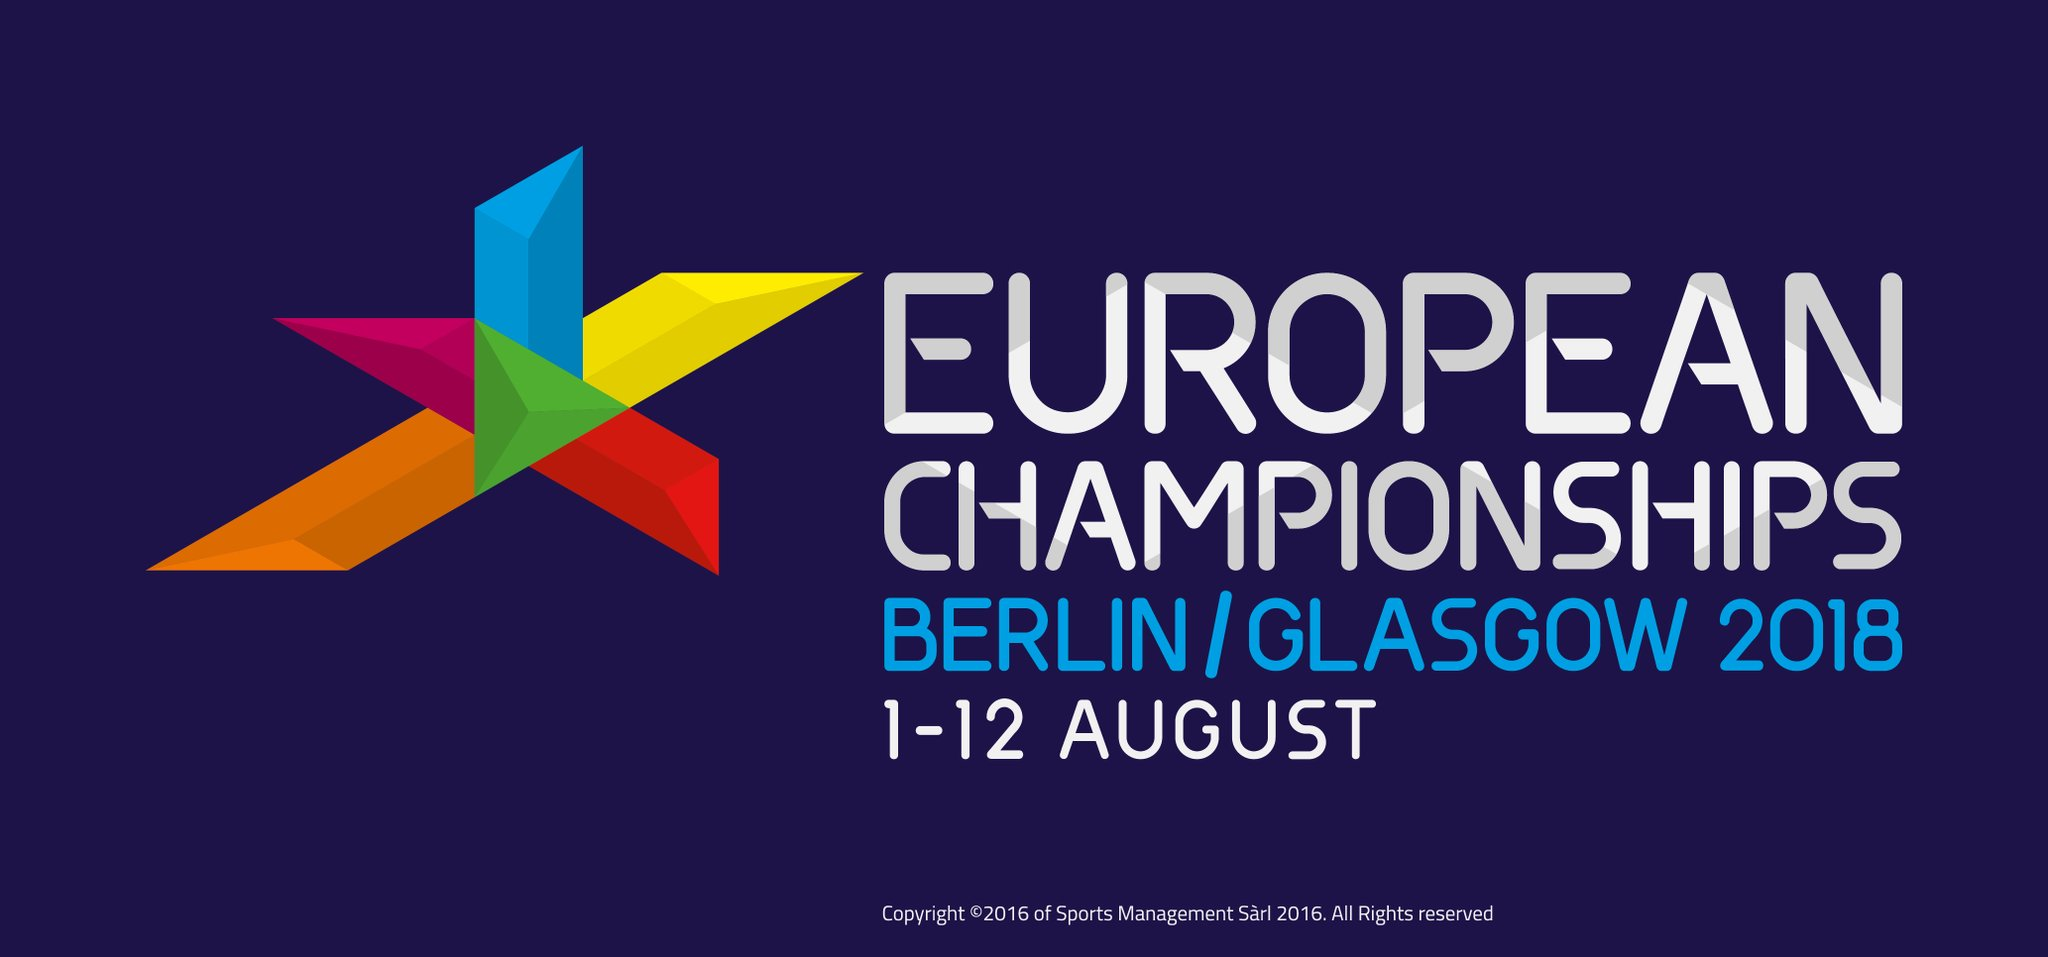 Glasgow to host European Championships in 2018